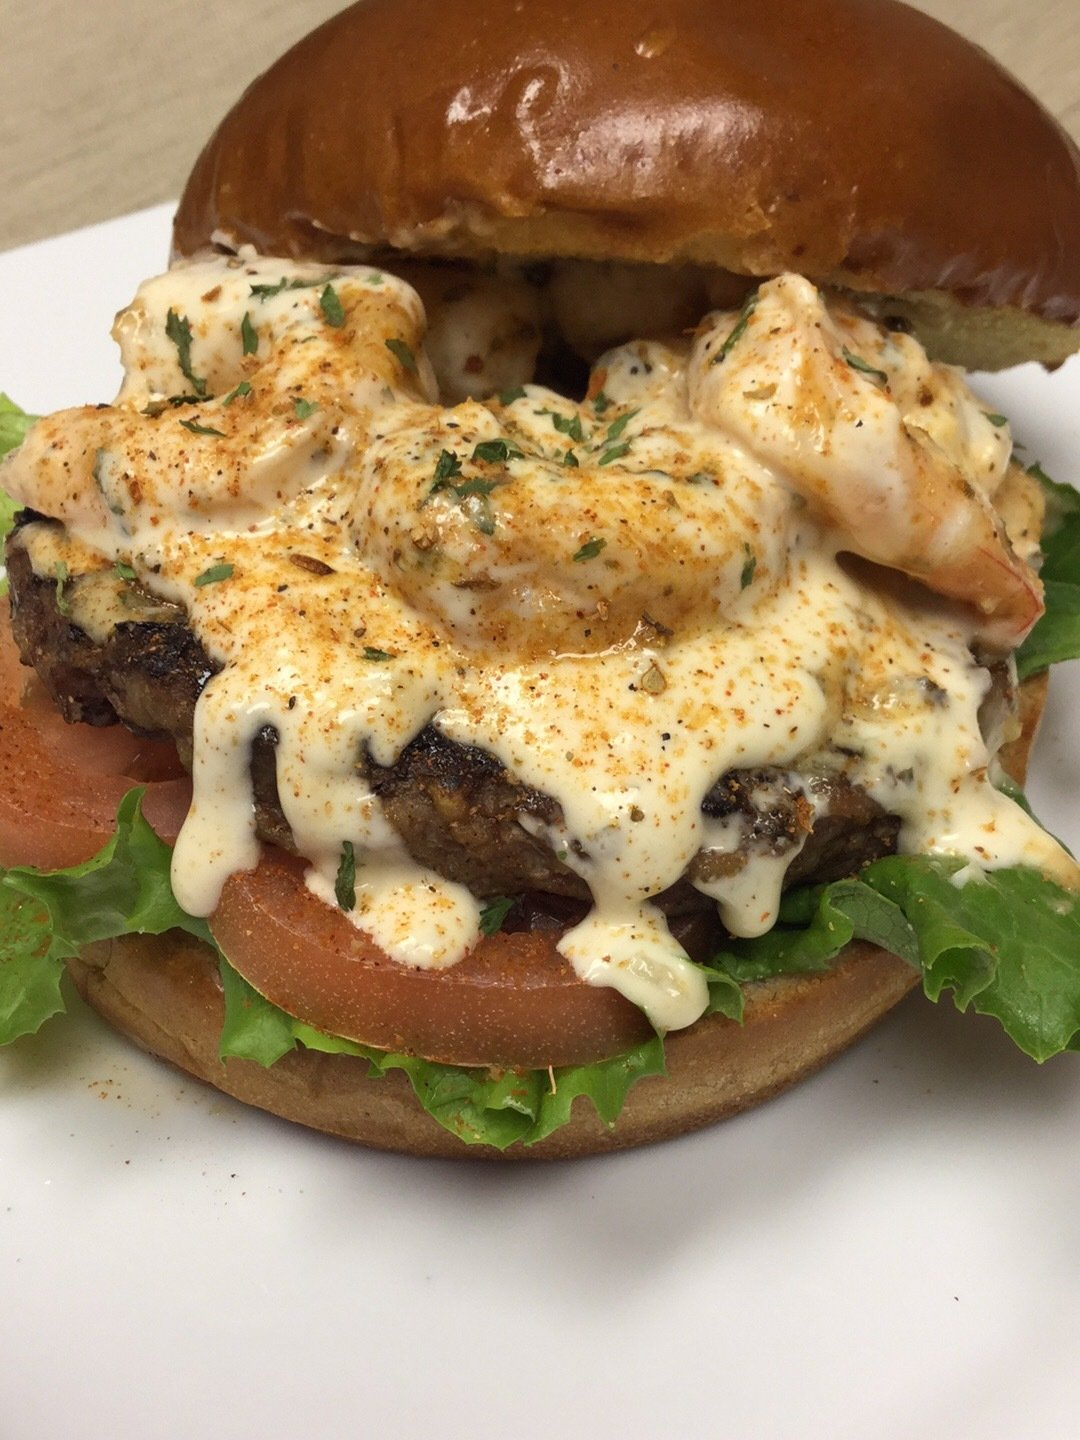 The Louisiana/Texas Border Burger